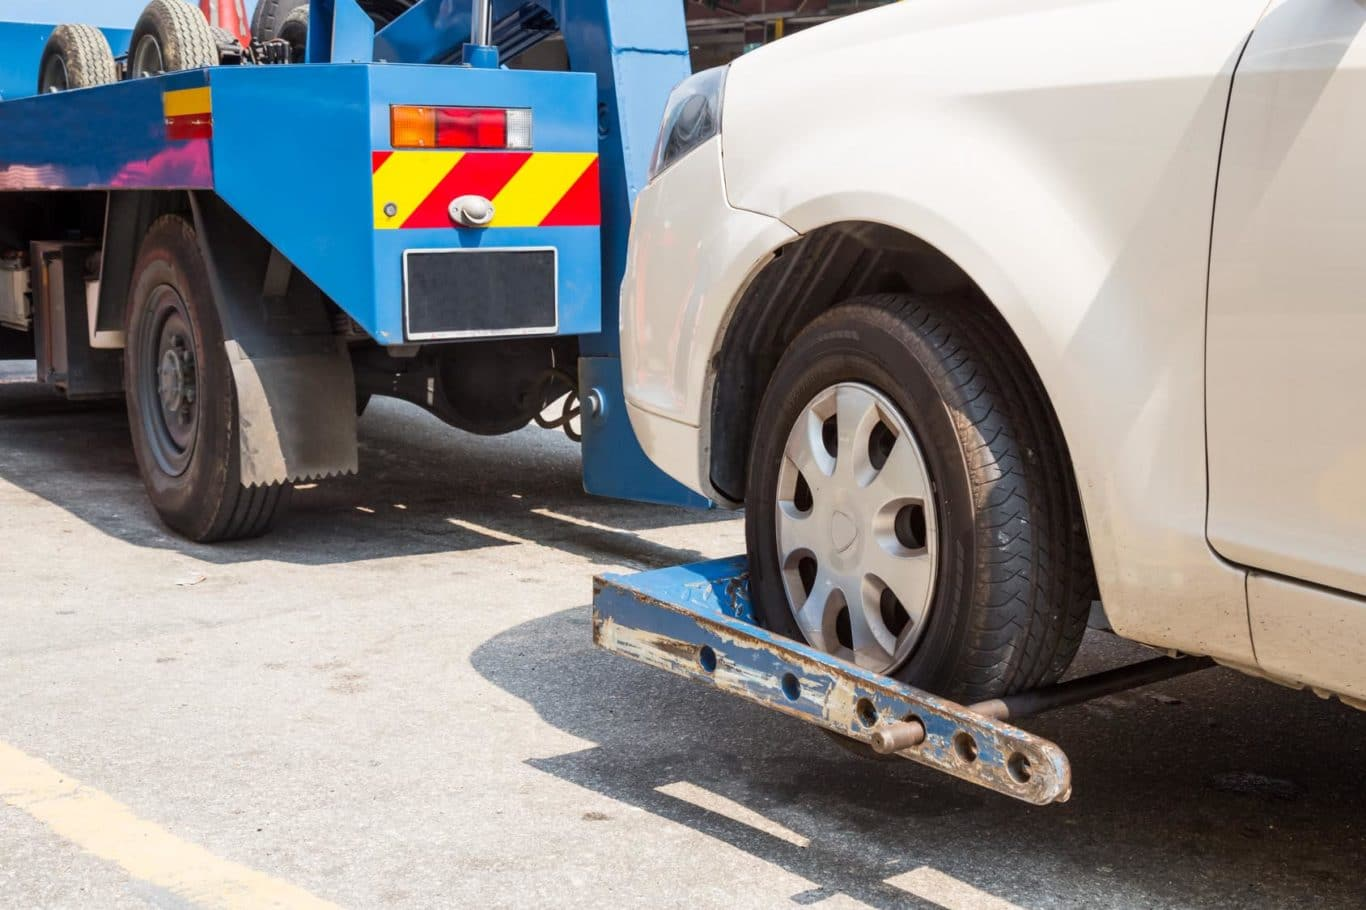 Kilmeage expert Car Towing services